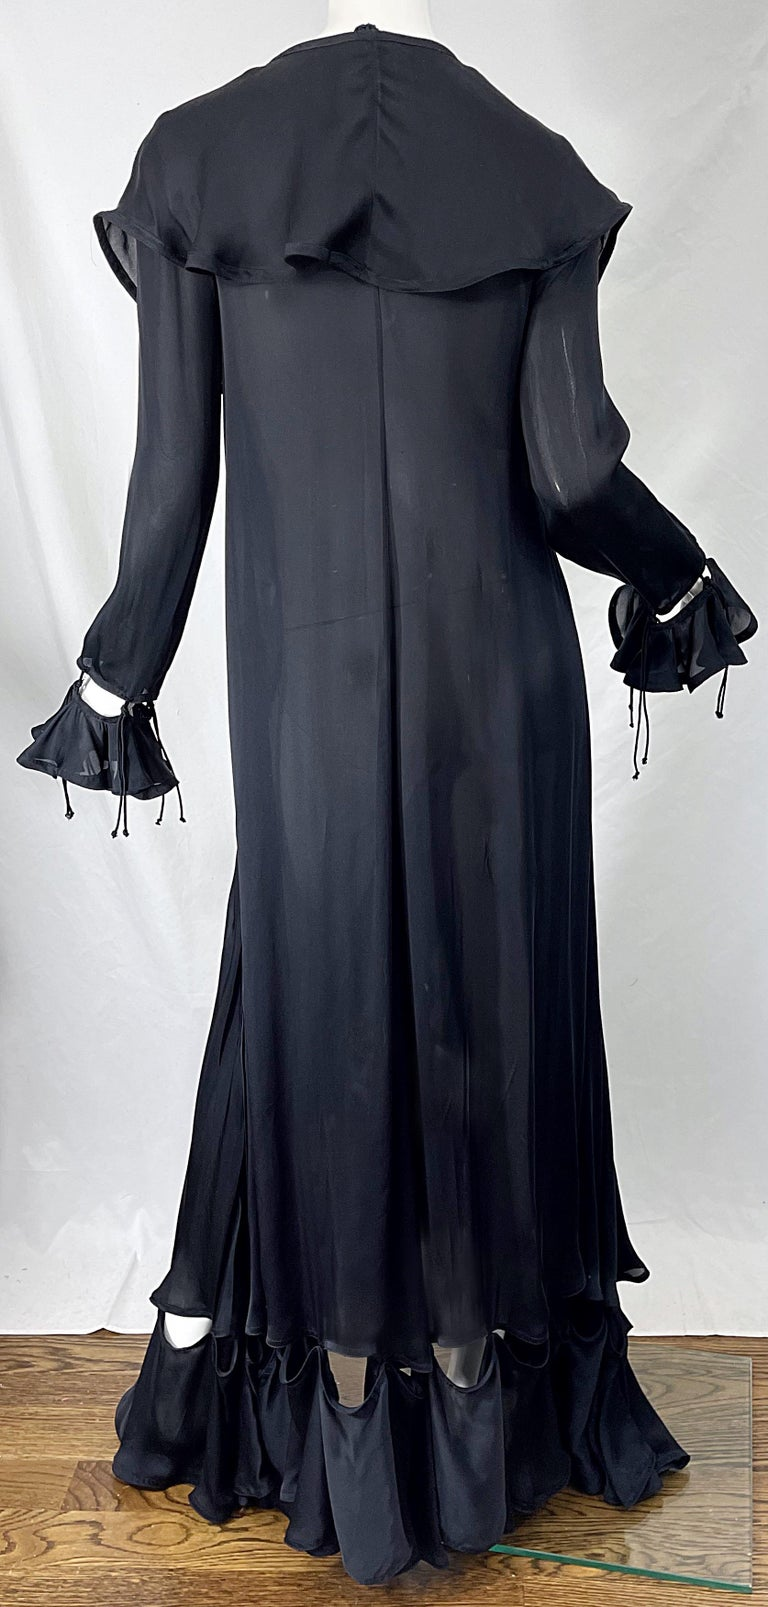 Yves Saint Laurent by Tom Ford Fall 2003 Runway Black Silk Chiffon Gown Size 38 For Sale 1